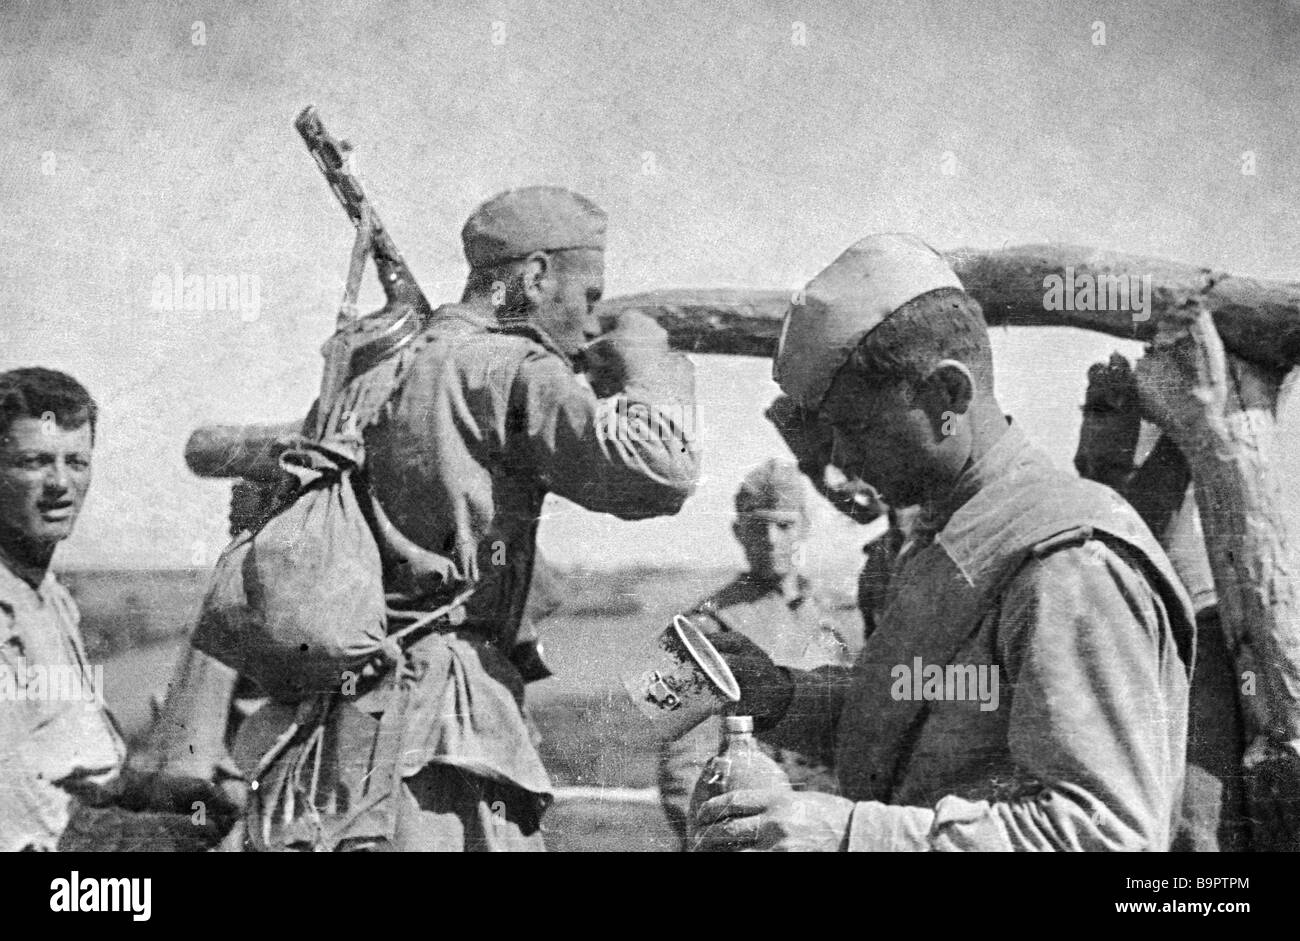 Soldiers drinking well water The Yassy Kishinev battle - Stock Image